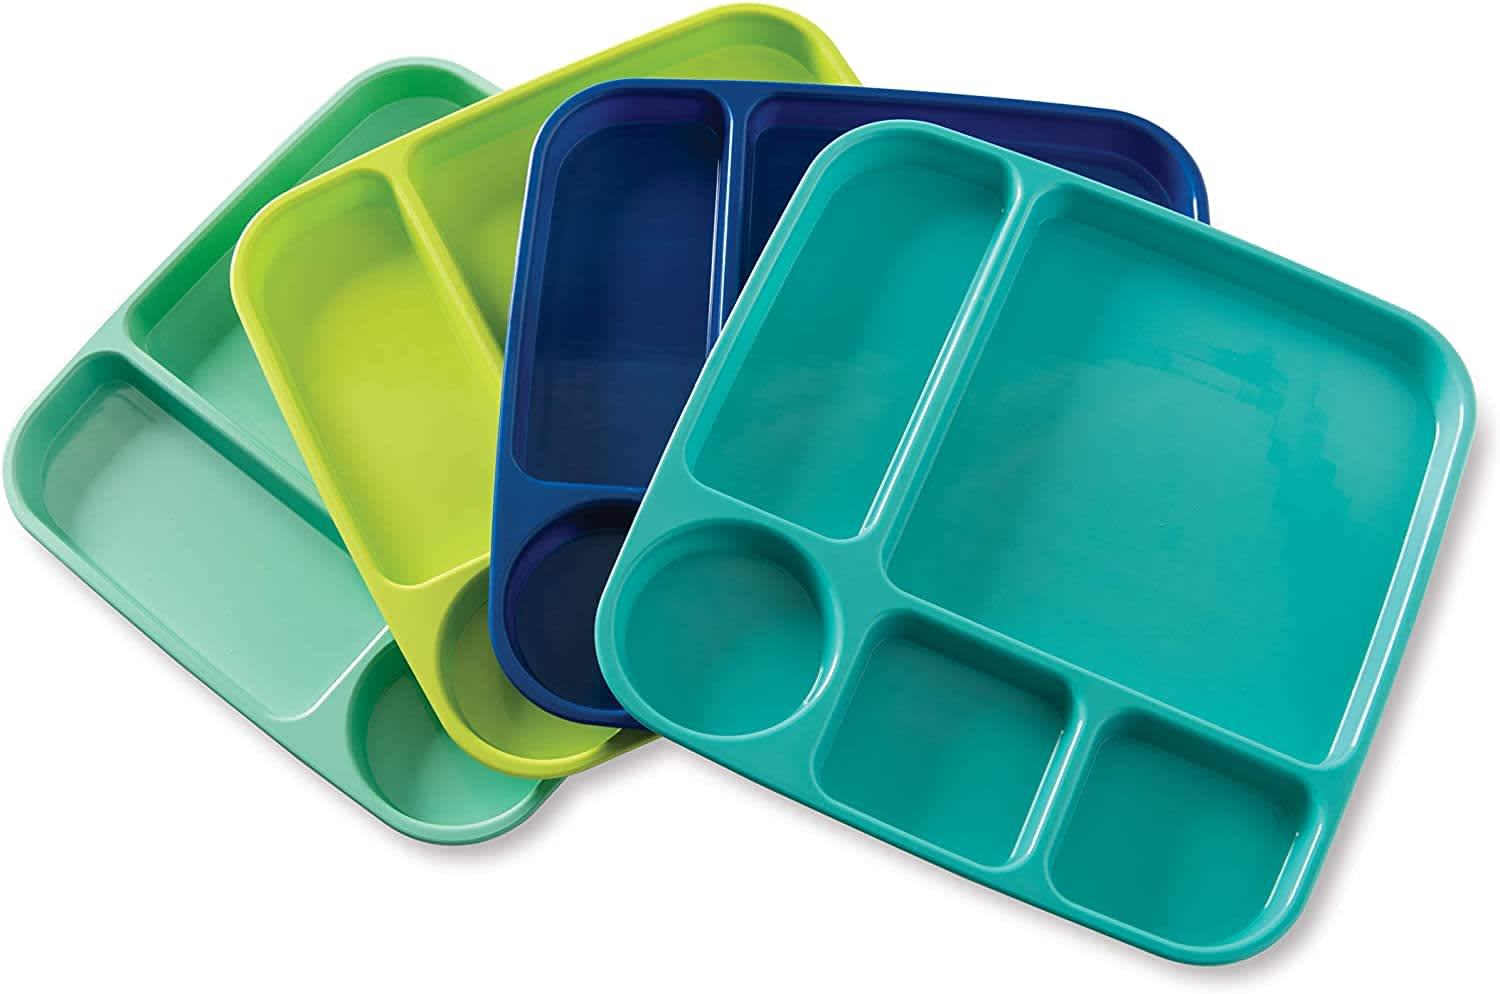 Nordic Ware Meal Trays 4-Pack